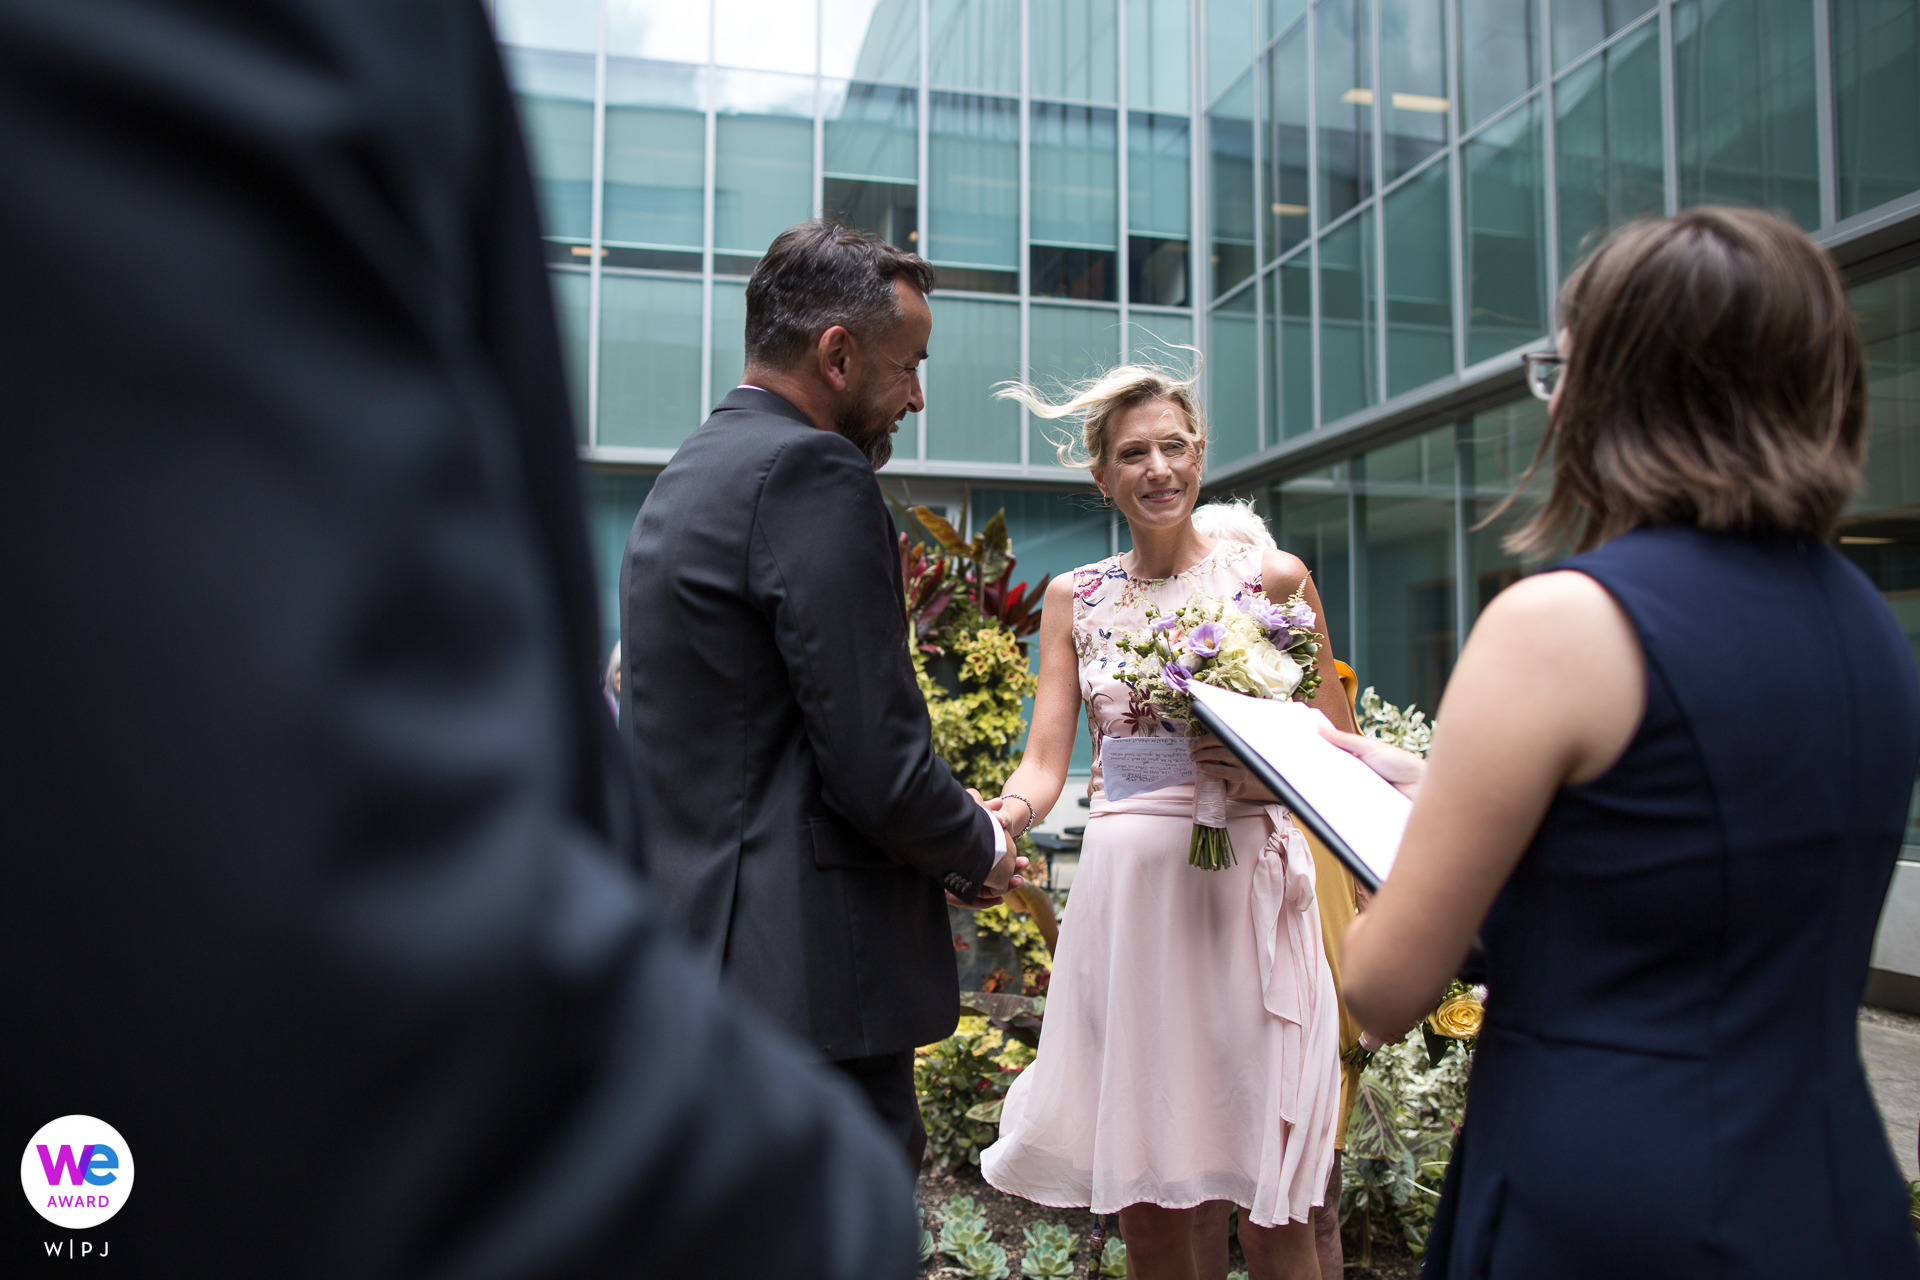 Guelph City Hall, Ontario, Canada Elopement Ceremony Photo | Outdoor ceremony took place inside the garden courtyard